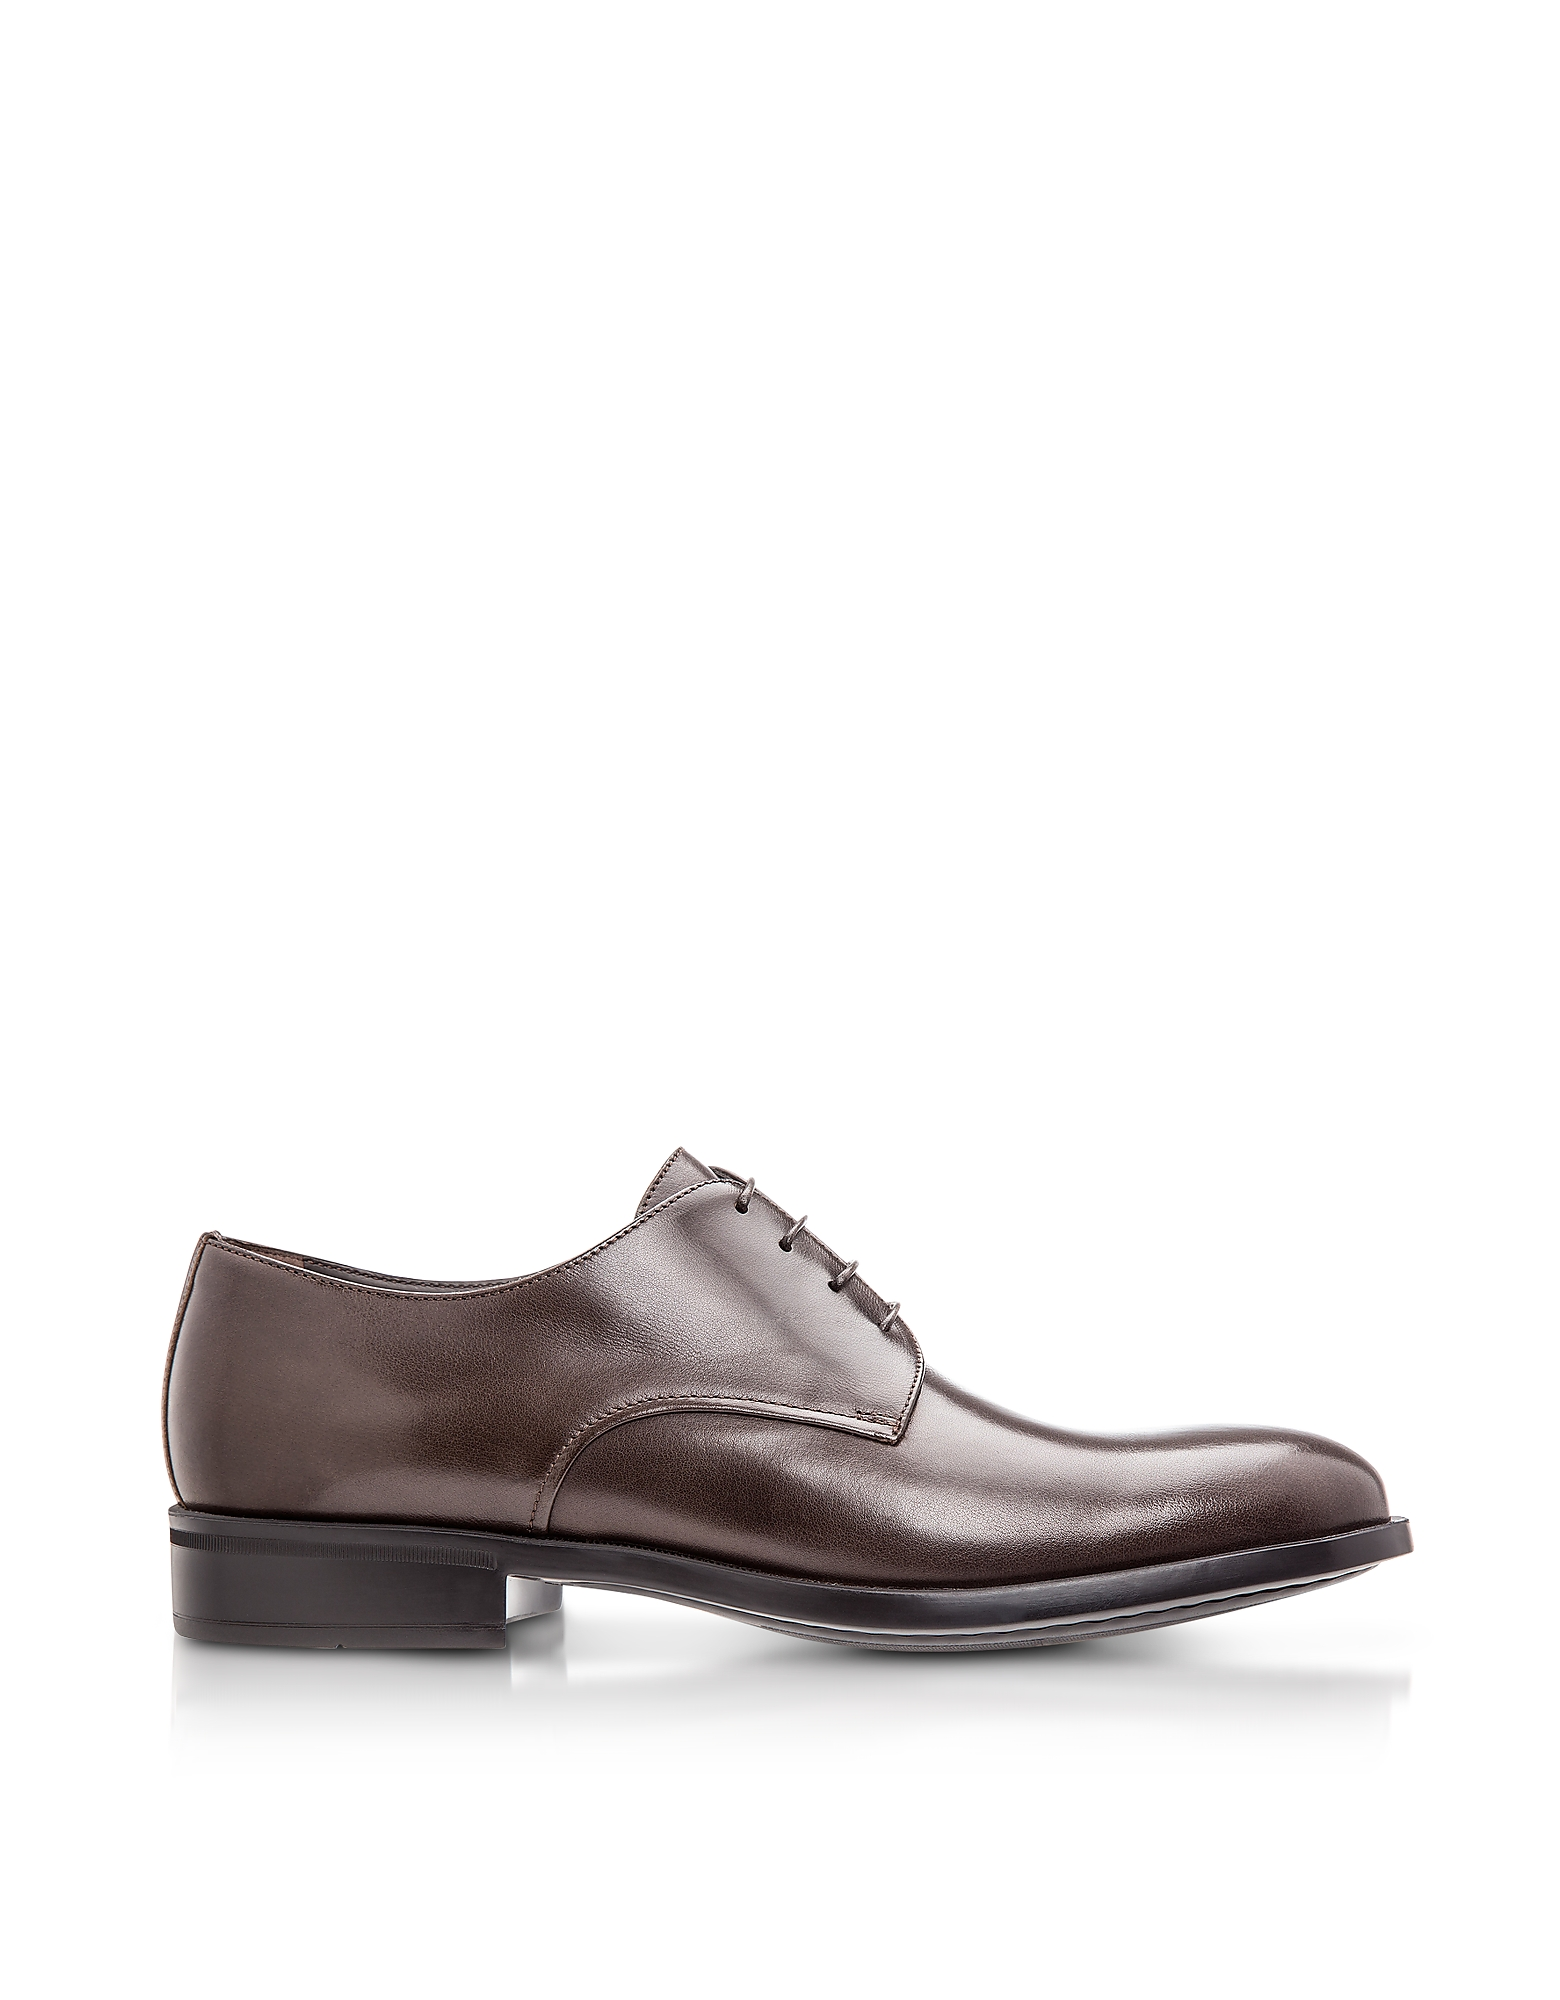 Moreschi Shoes, Cork Brown M Buffalo Leather Derby Shoes